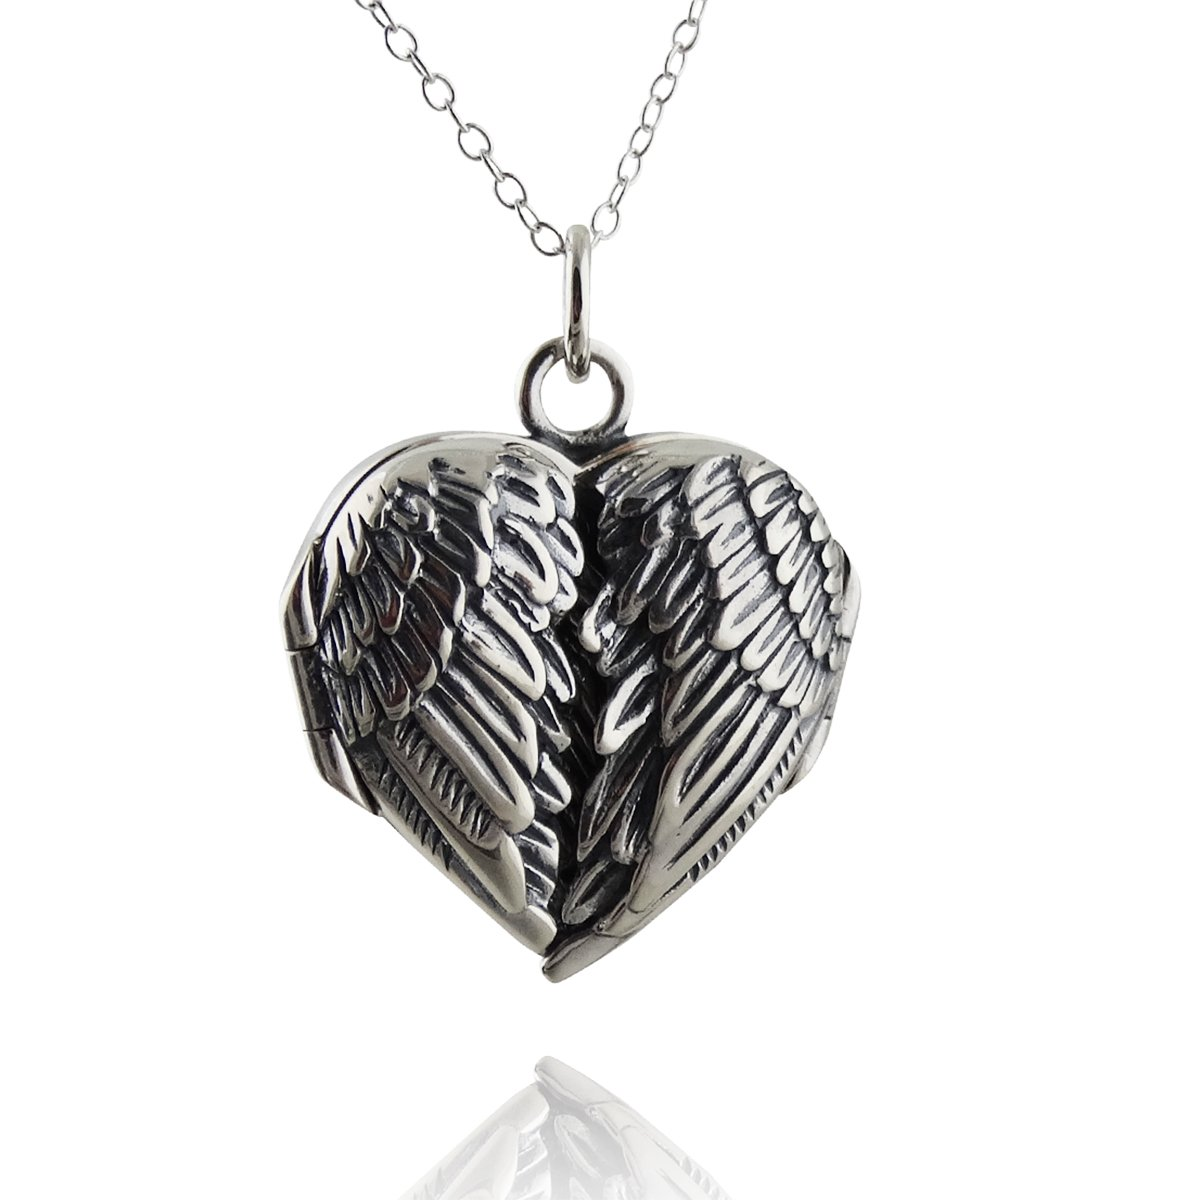 Sterling Silver Angel Wings Heart Locket Necklace, 18